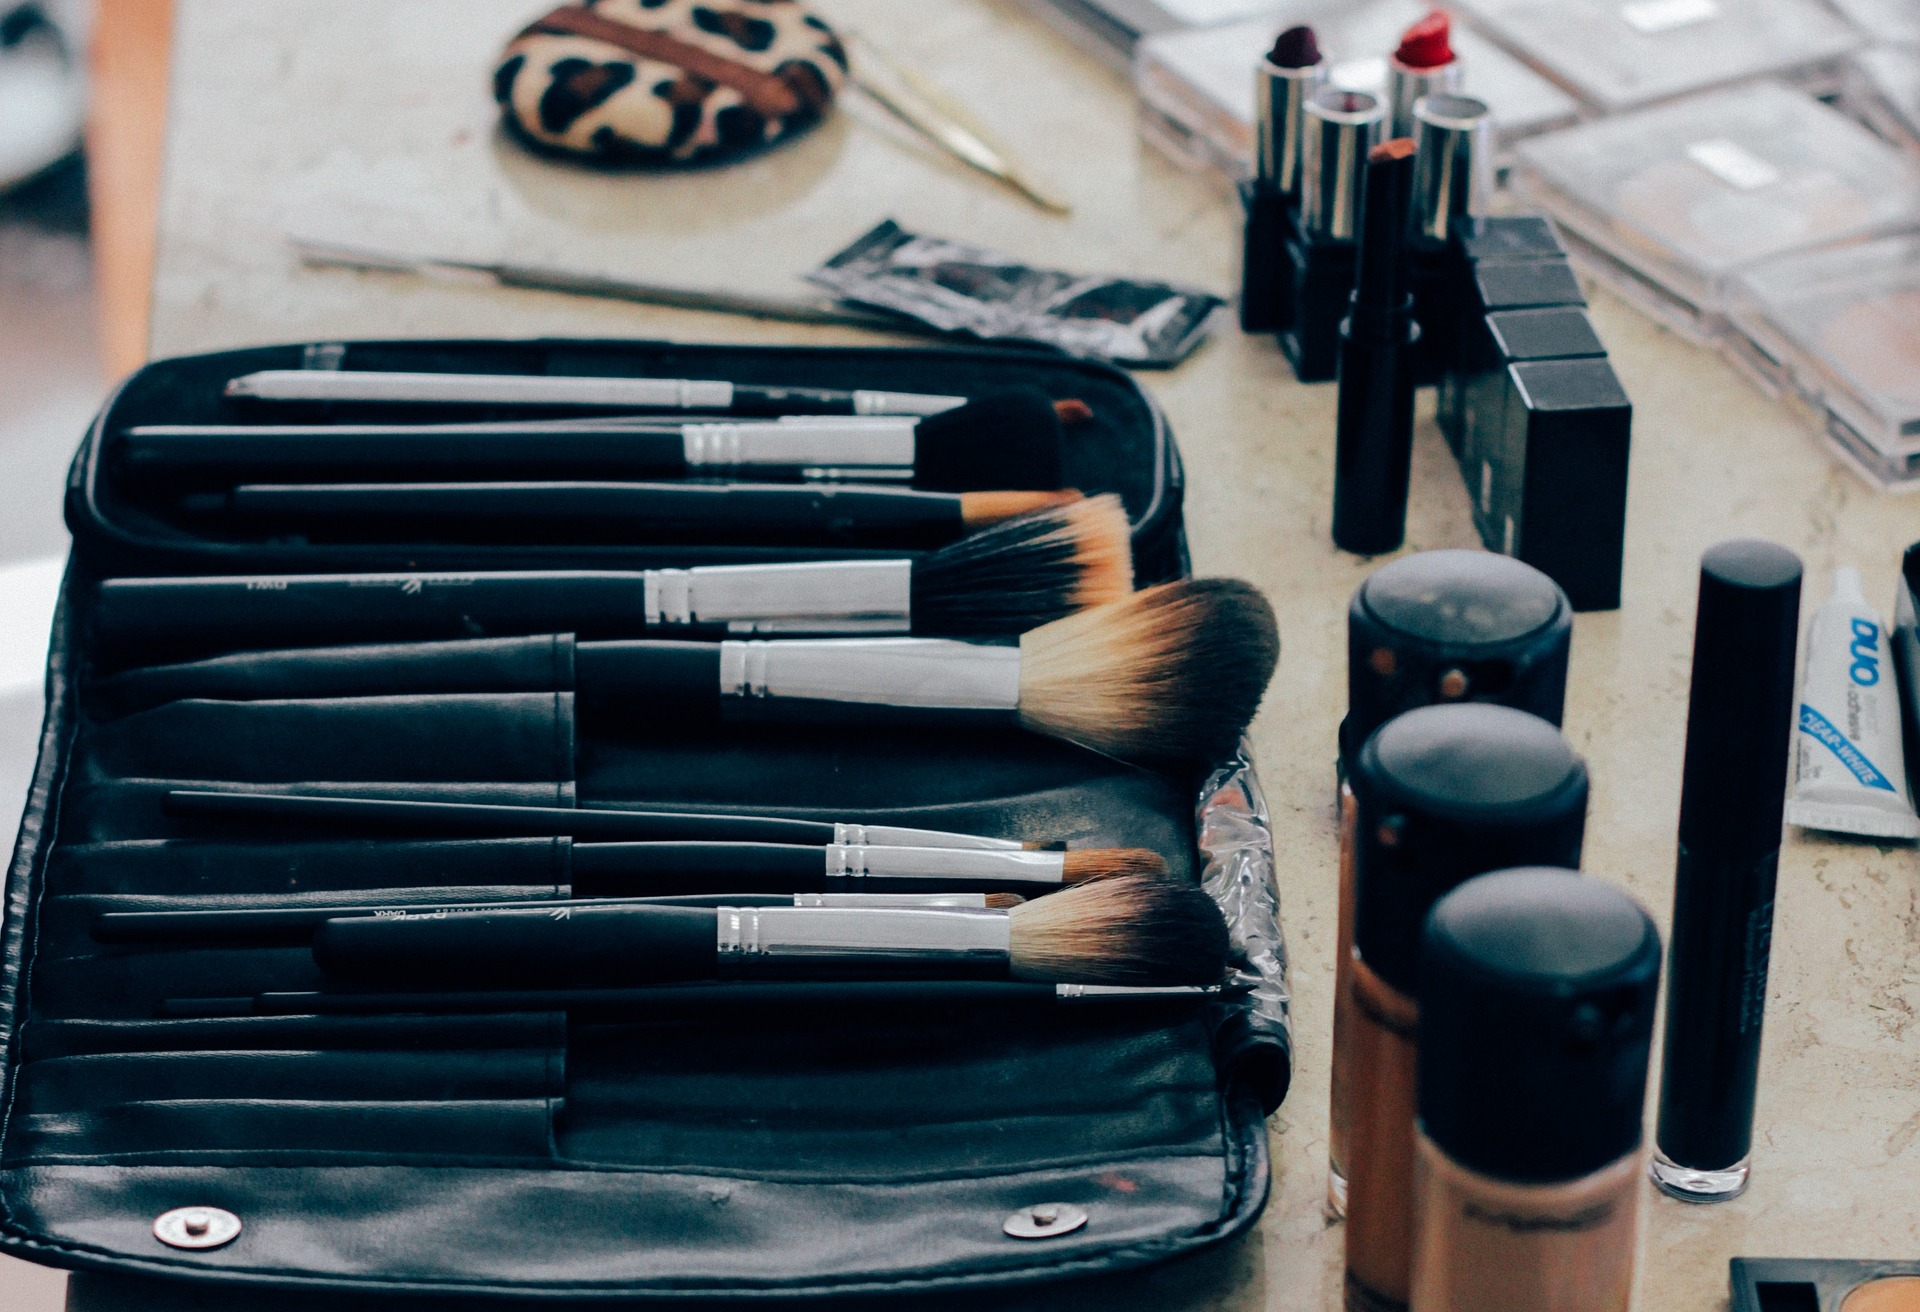 Wash your make-up brushes you dirty b**ch!